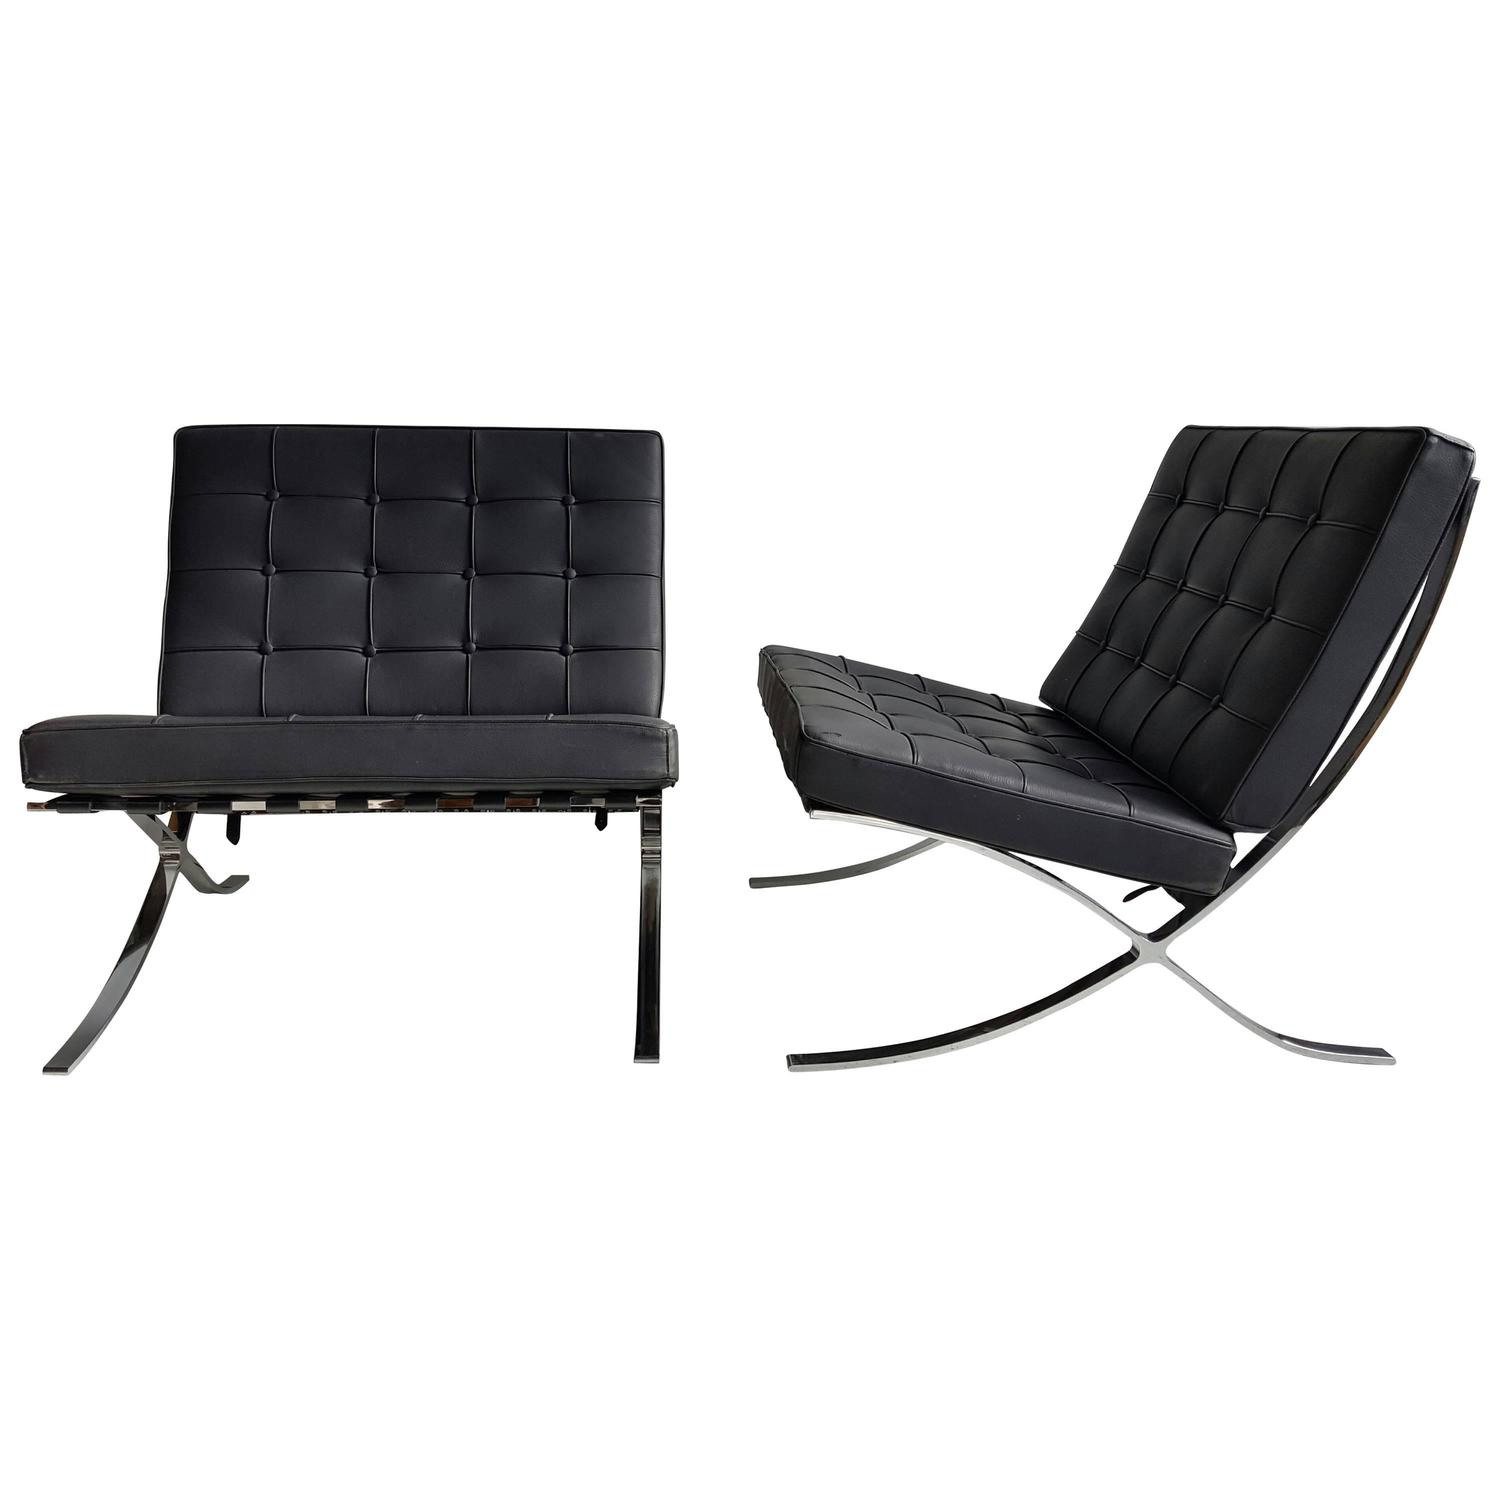 classic pair modernist barcelona chairs mies van der rohe. Black Bedroom Furniture Sets. Home Design Ideas